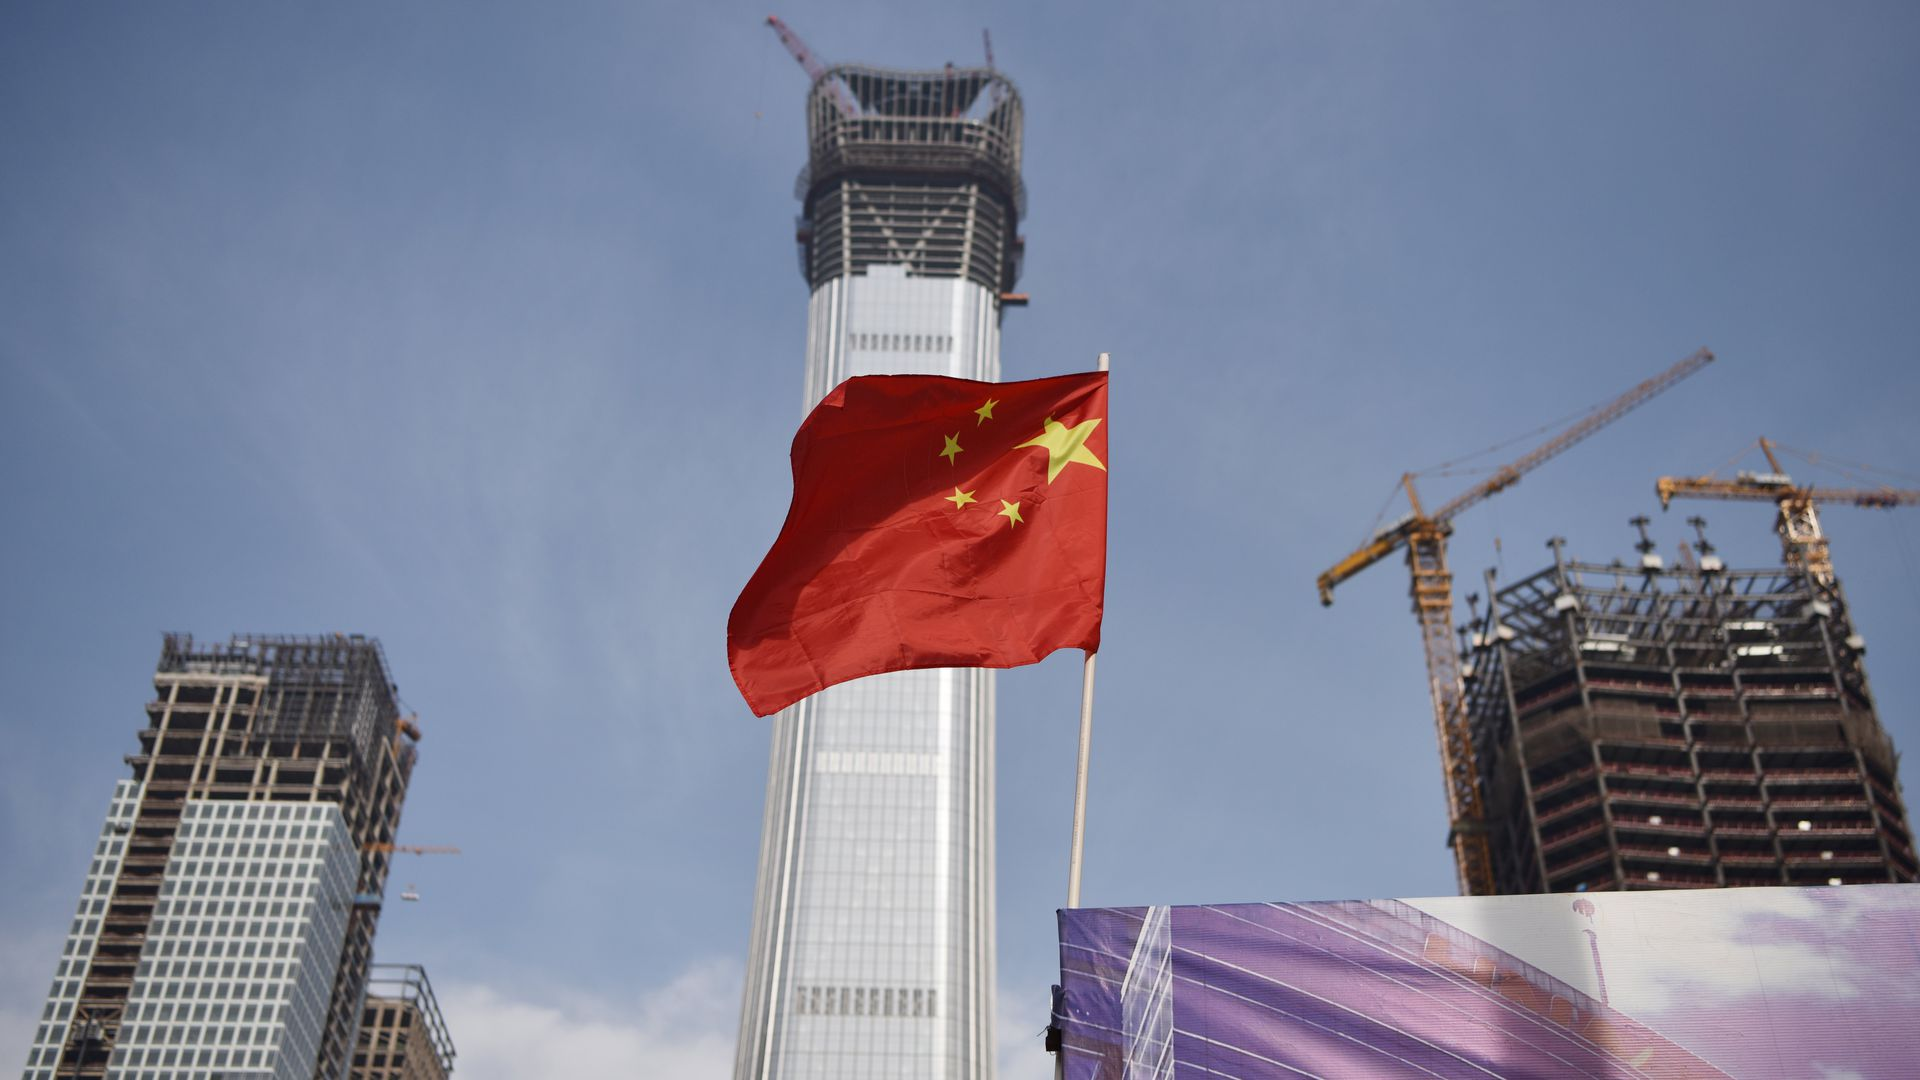 A Chinese national flag flies at the construction site for new buildings in Beijing's central business district